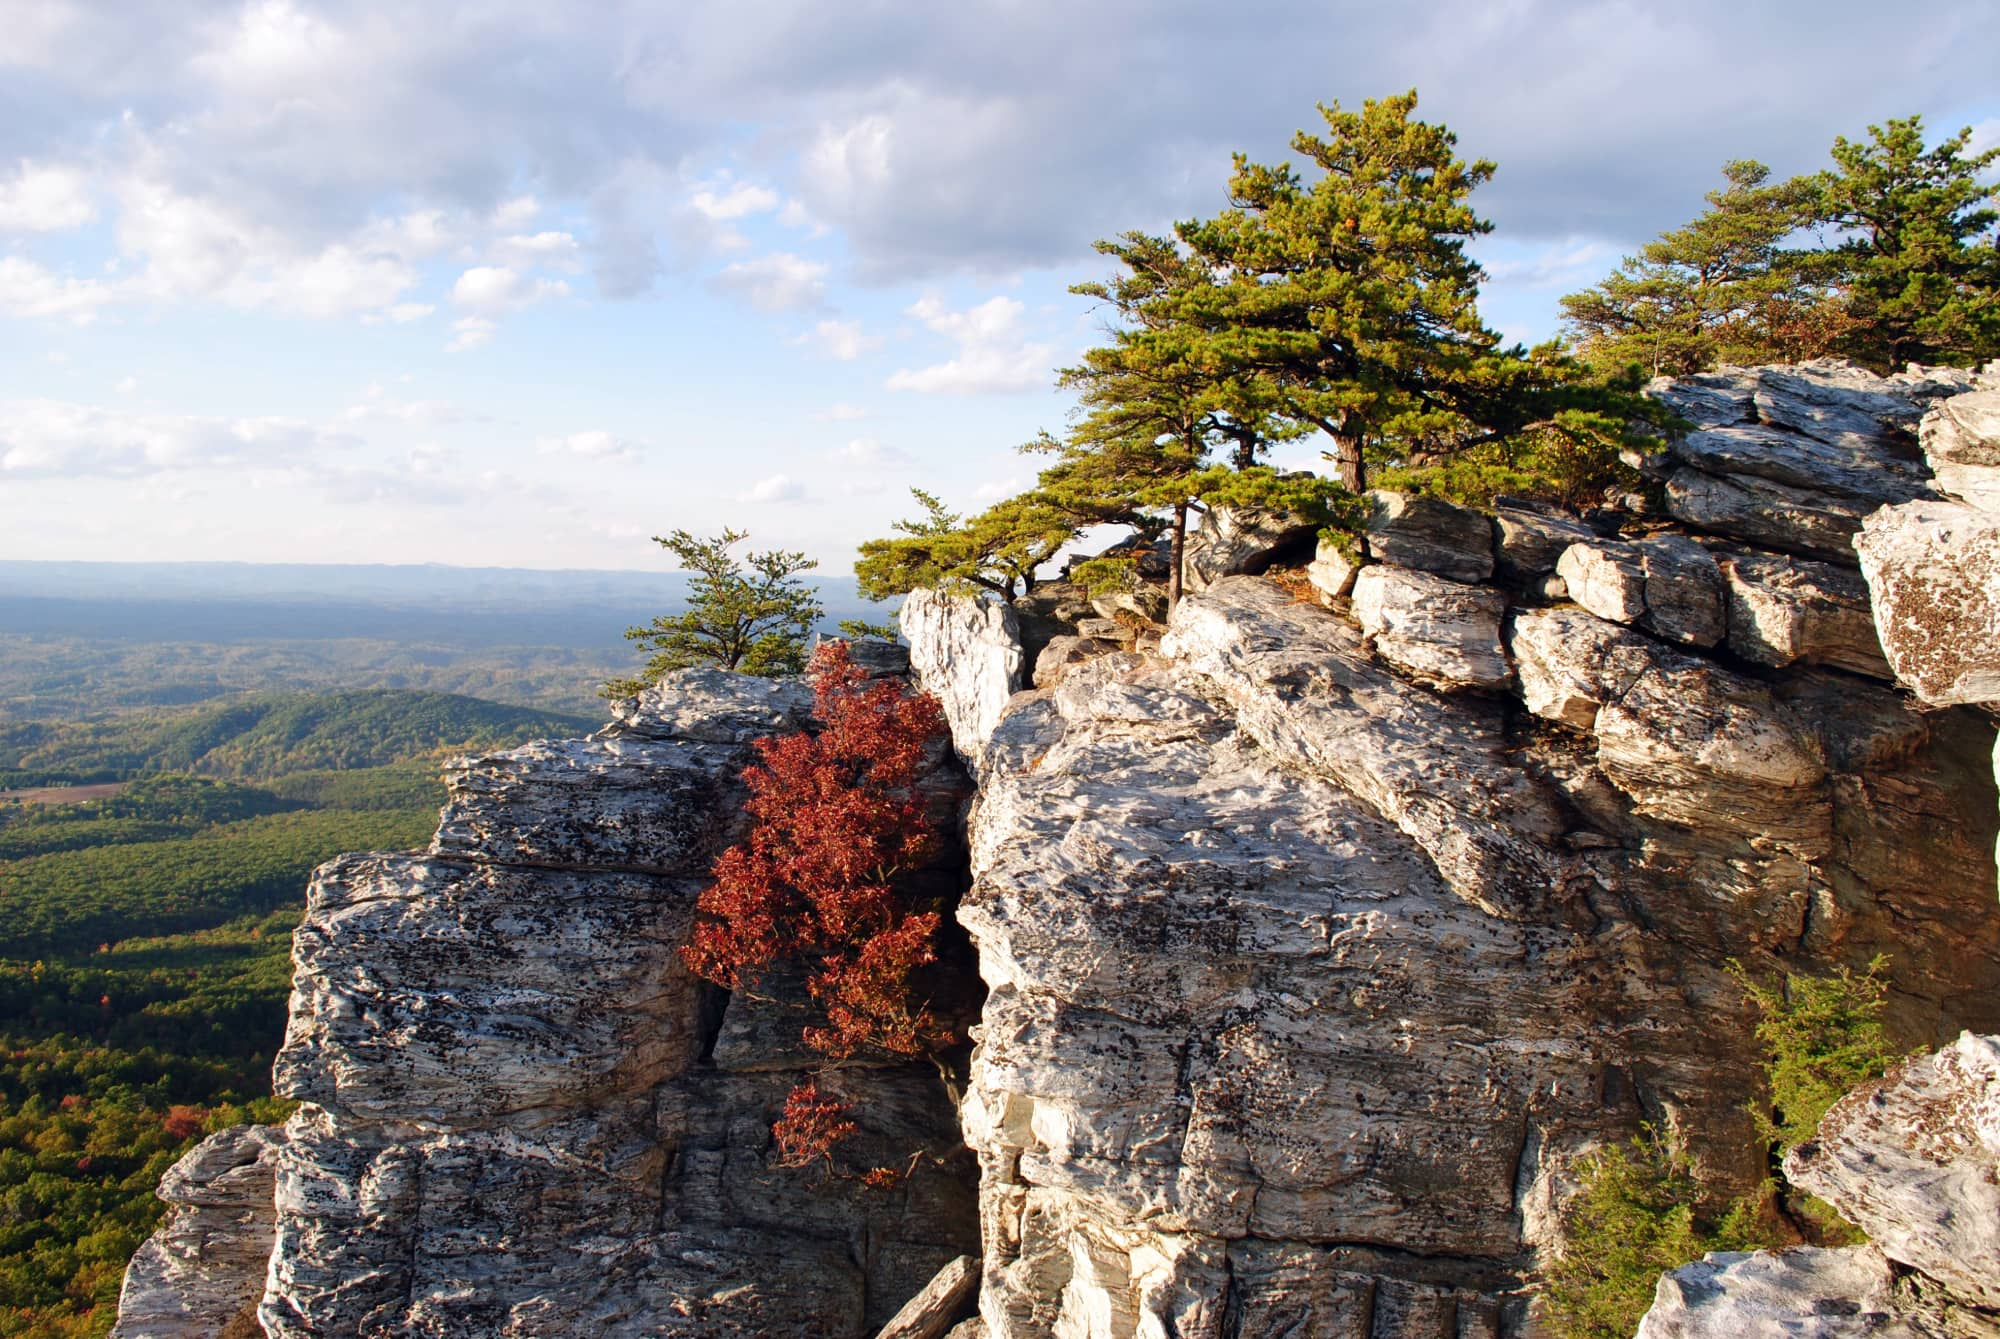 A cluster of trees on a stone cliff at Hanging Rock State Park, overlooking forested hills of North Carolina.